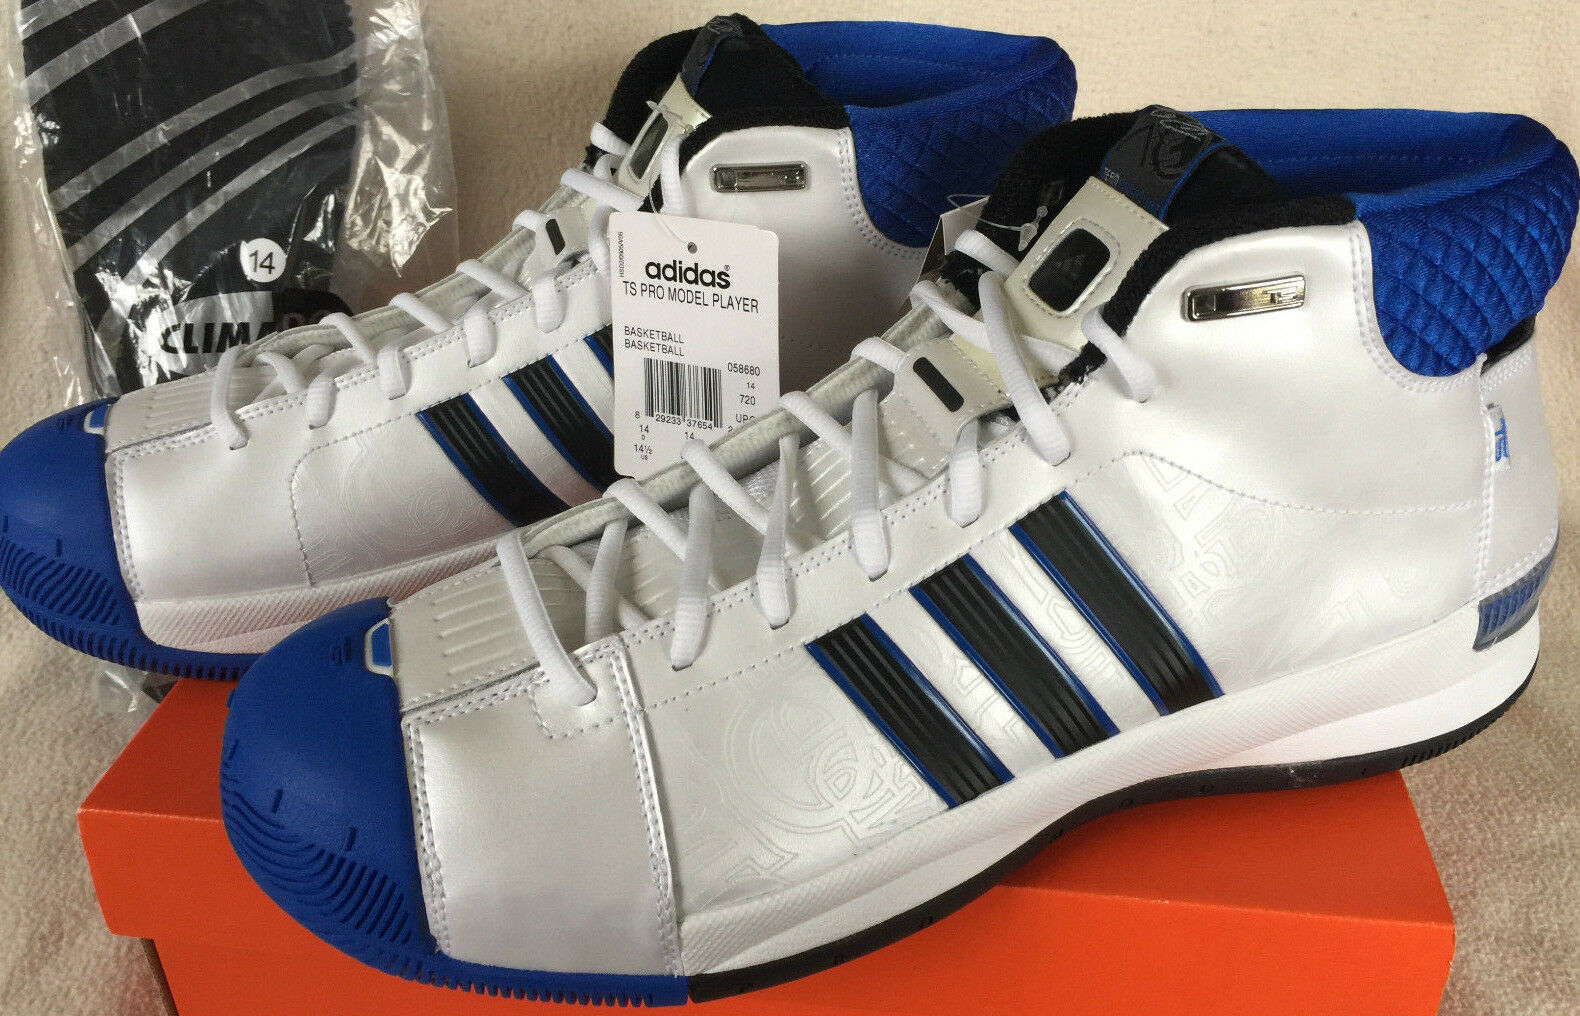 adidas basketball player shoes